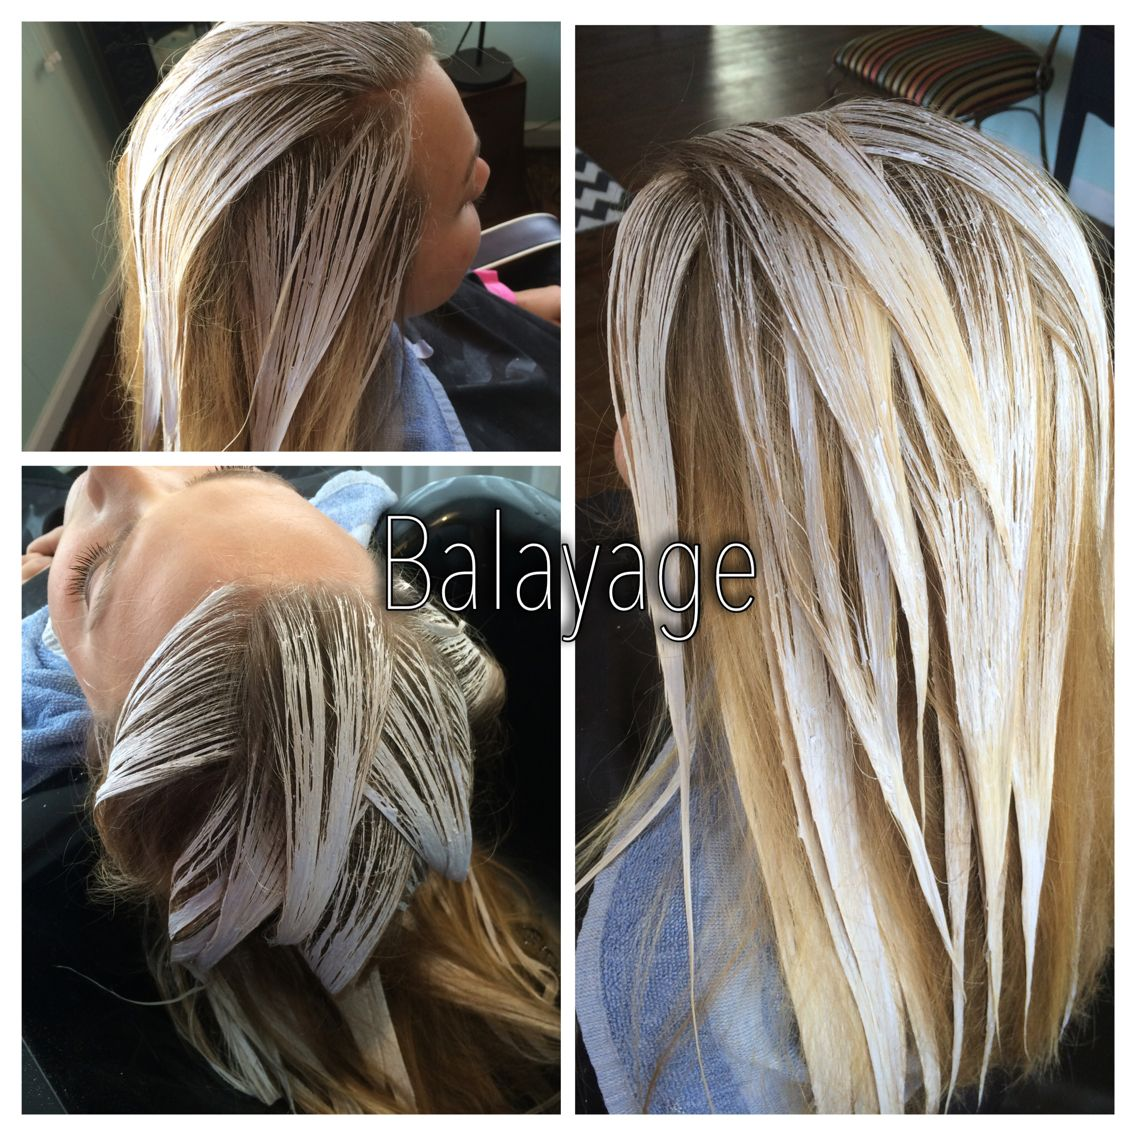 balayage hair painting in process no foils a great. Black Bedroom Furniture Sets. Home Design Ideas